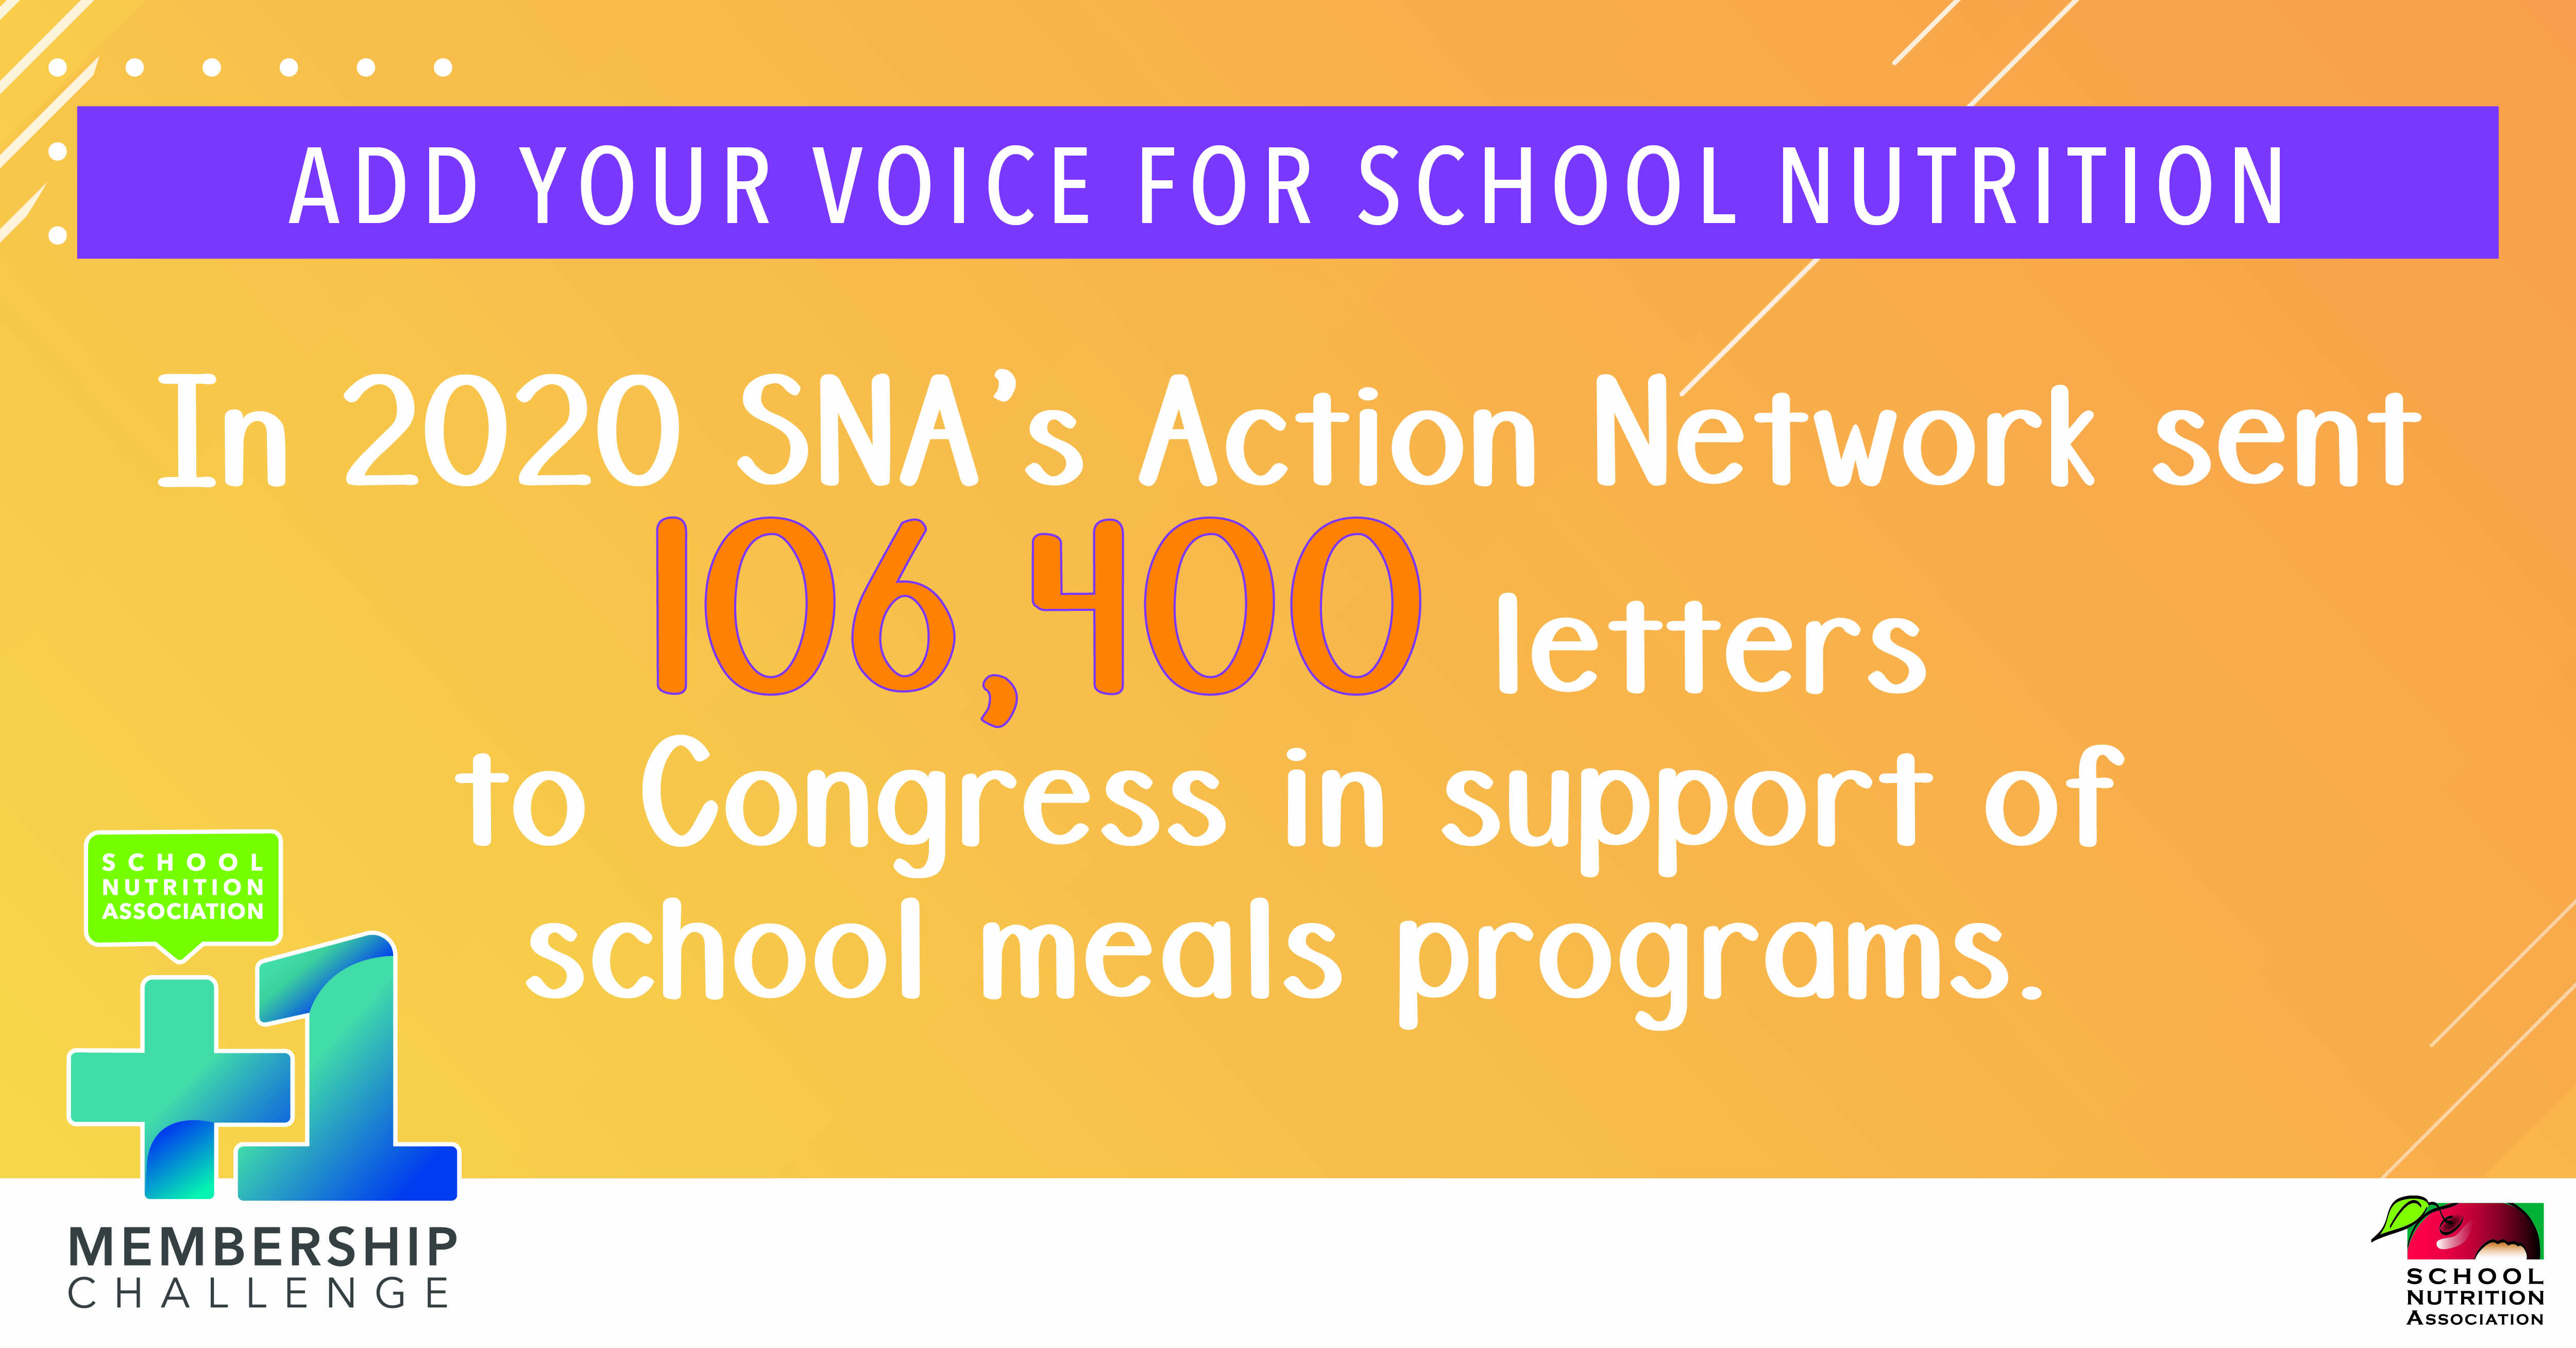 Add-Your-Voice-for-School-Nutrition-Twitter